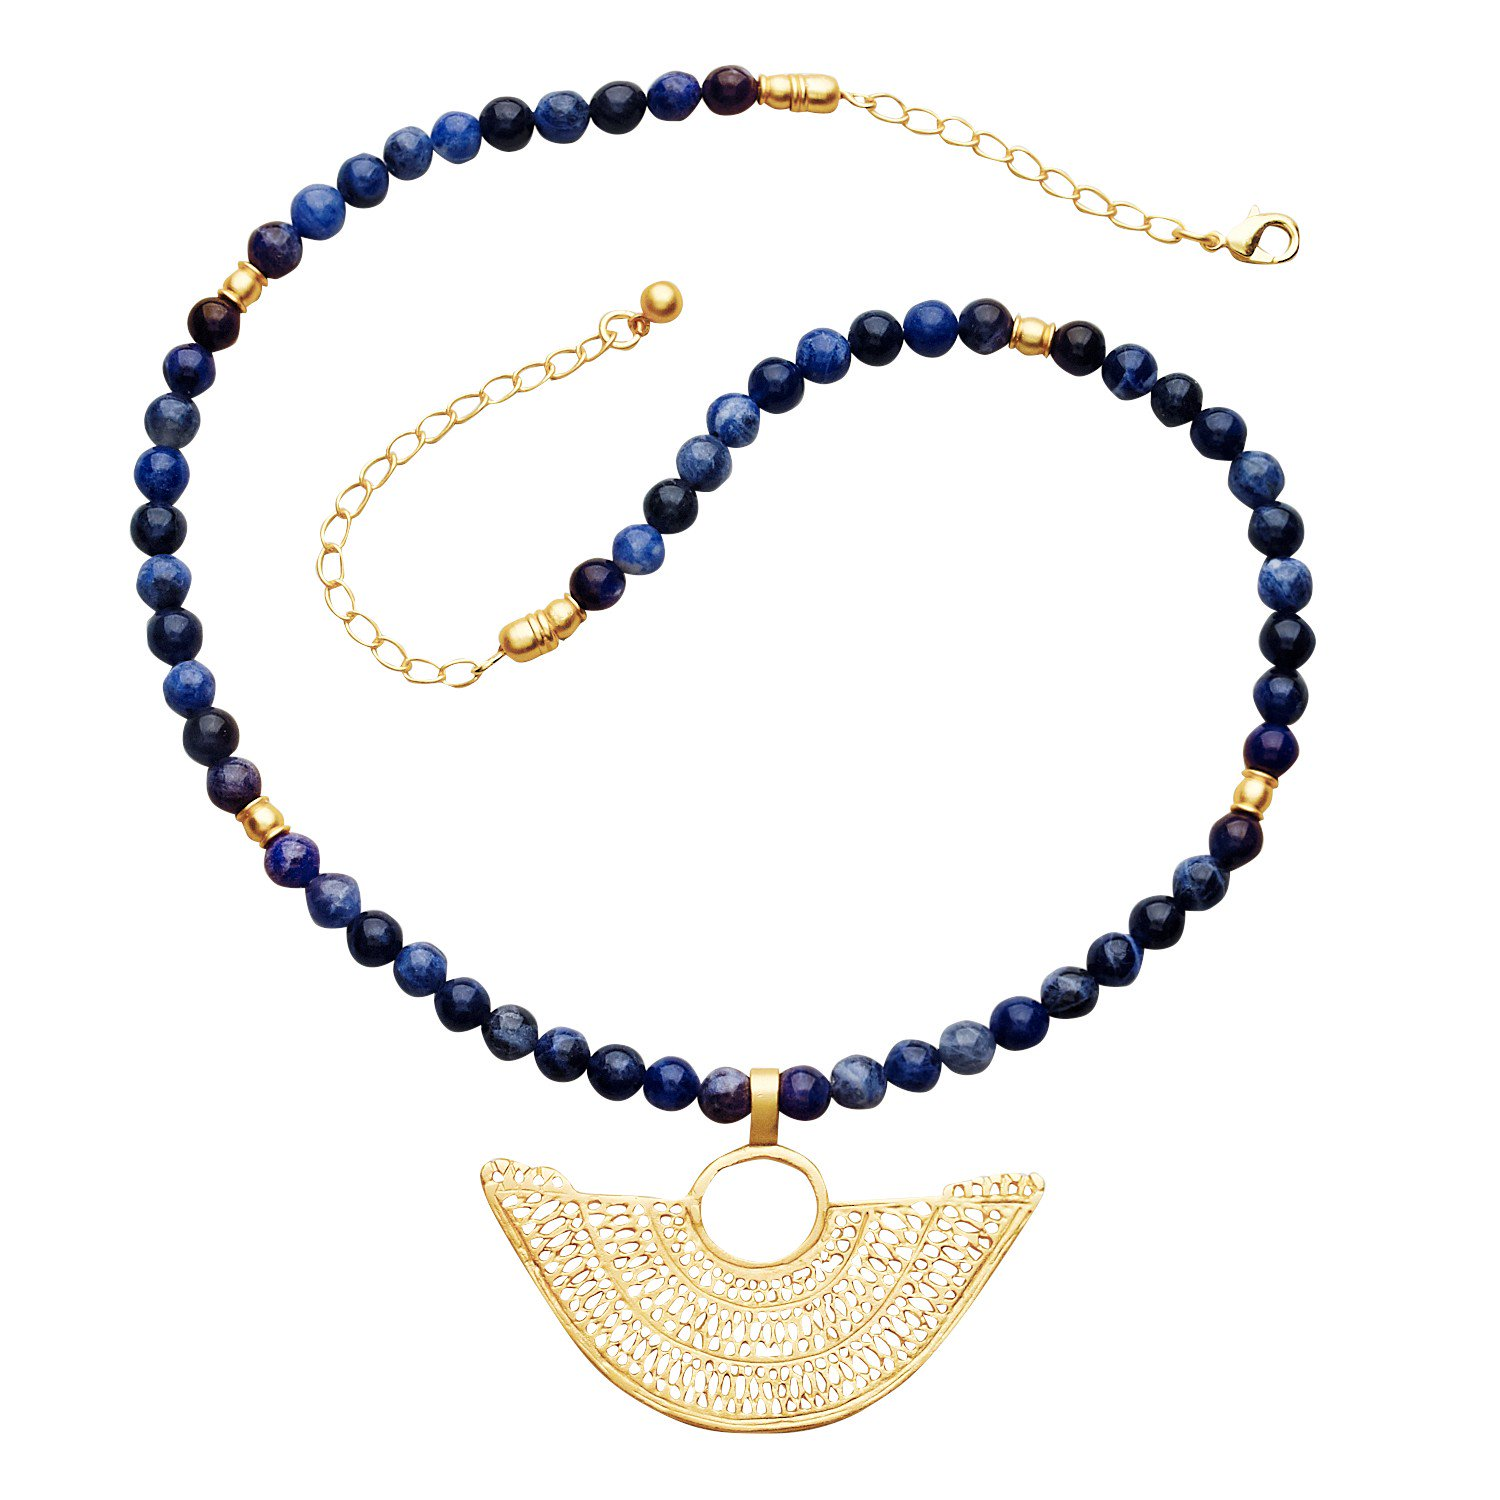 Authentic Fair Trade Product. Ethically sourced. Handcrafted in Colombia. 24K Gold Fill